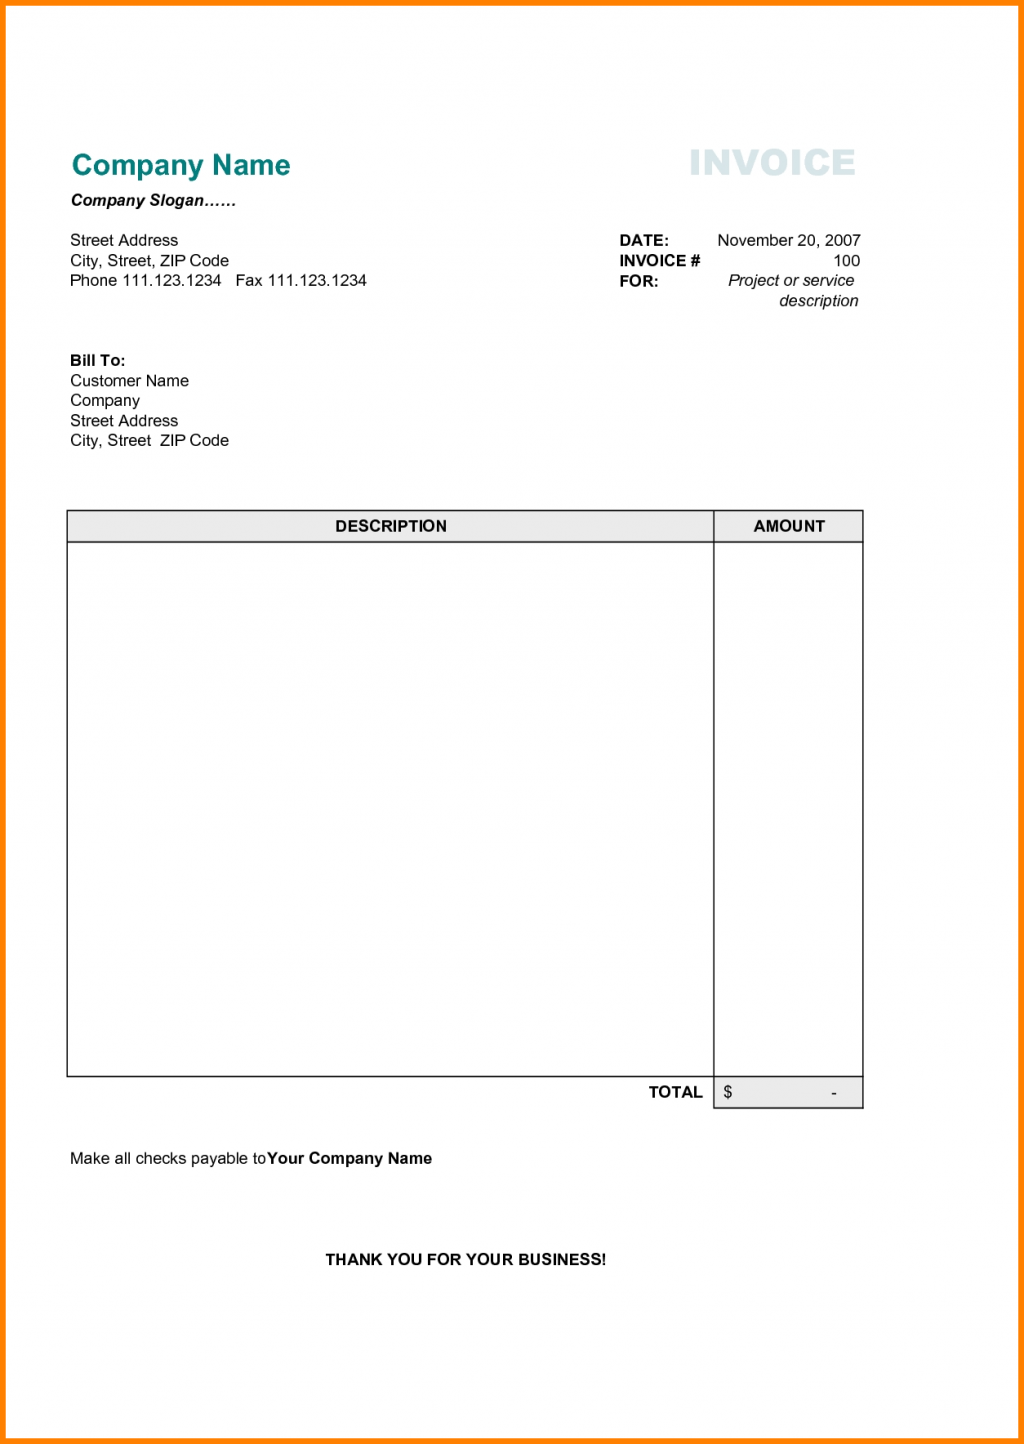 90 Customize Personal Invoice Template Word Uk In Word With Personal Invoice Template Word Uk Cards Design Templates